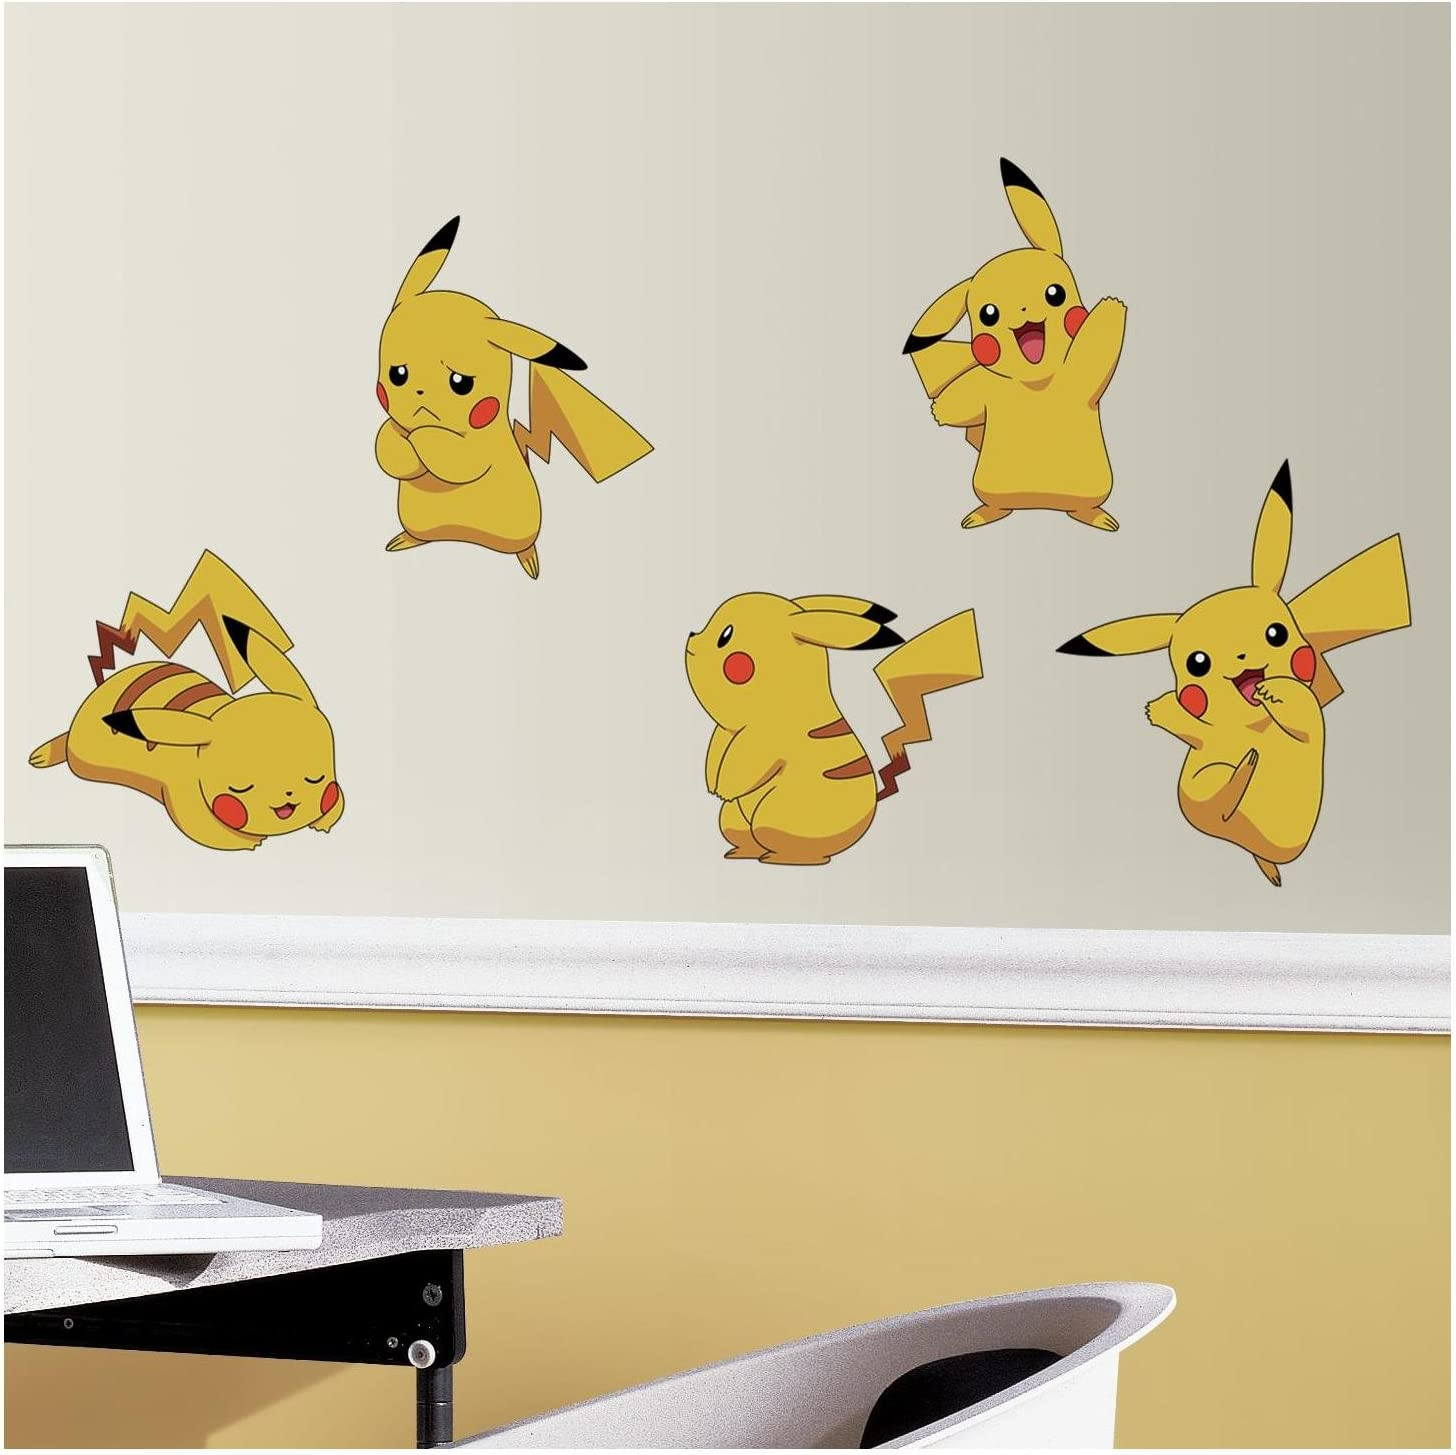 RoomMates Pokemon Pikachu Peel And Stick Wall Decals - RMK3596SCS